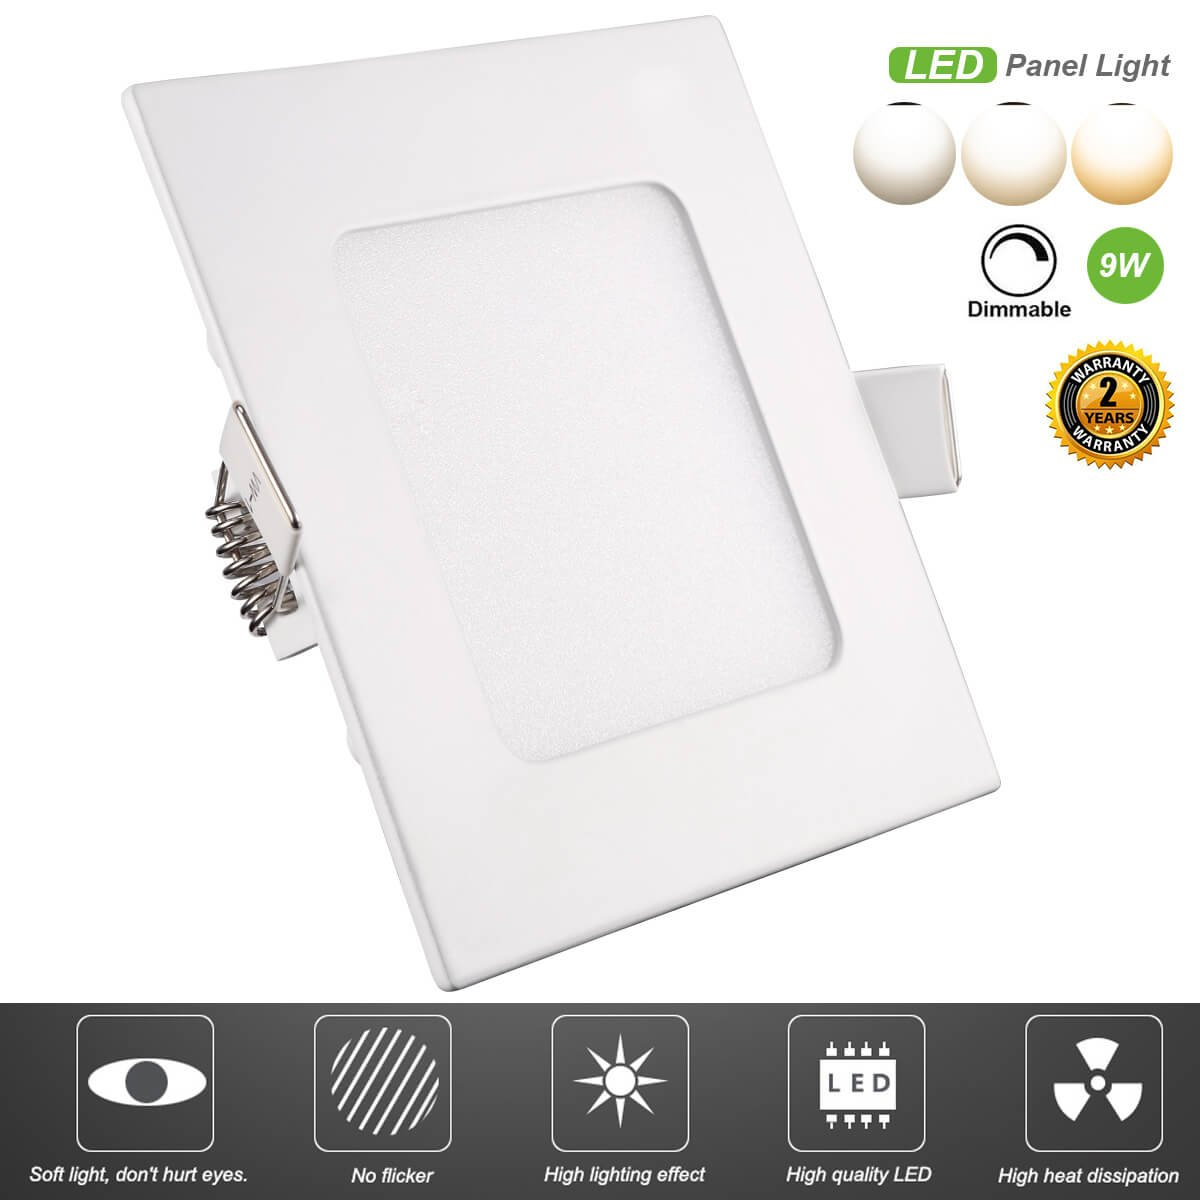 ProGreen LED Panel Light Fixture, 9W Dimmable Square Ultra-thin LED Recessed Ceiling Down Light Flat Lamp, 720lm, Warm White 3000K, Cut Hole 5.0 Inch, with 110V LED Driver